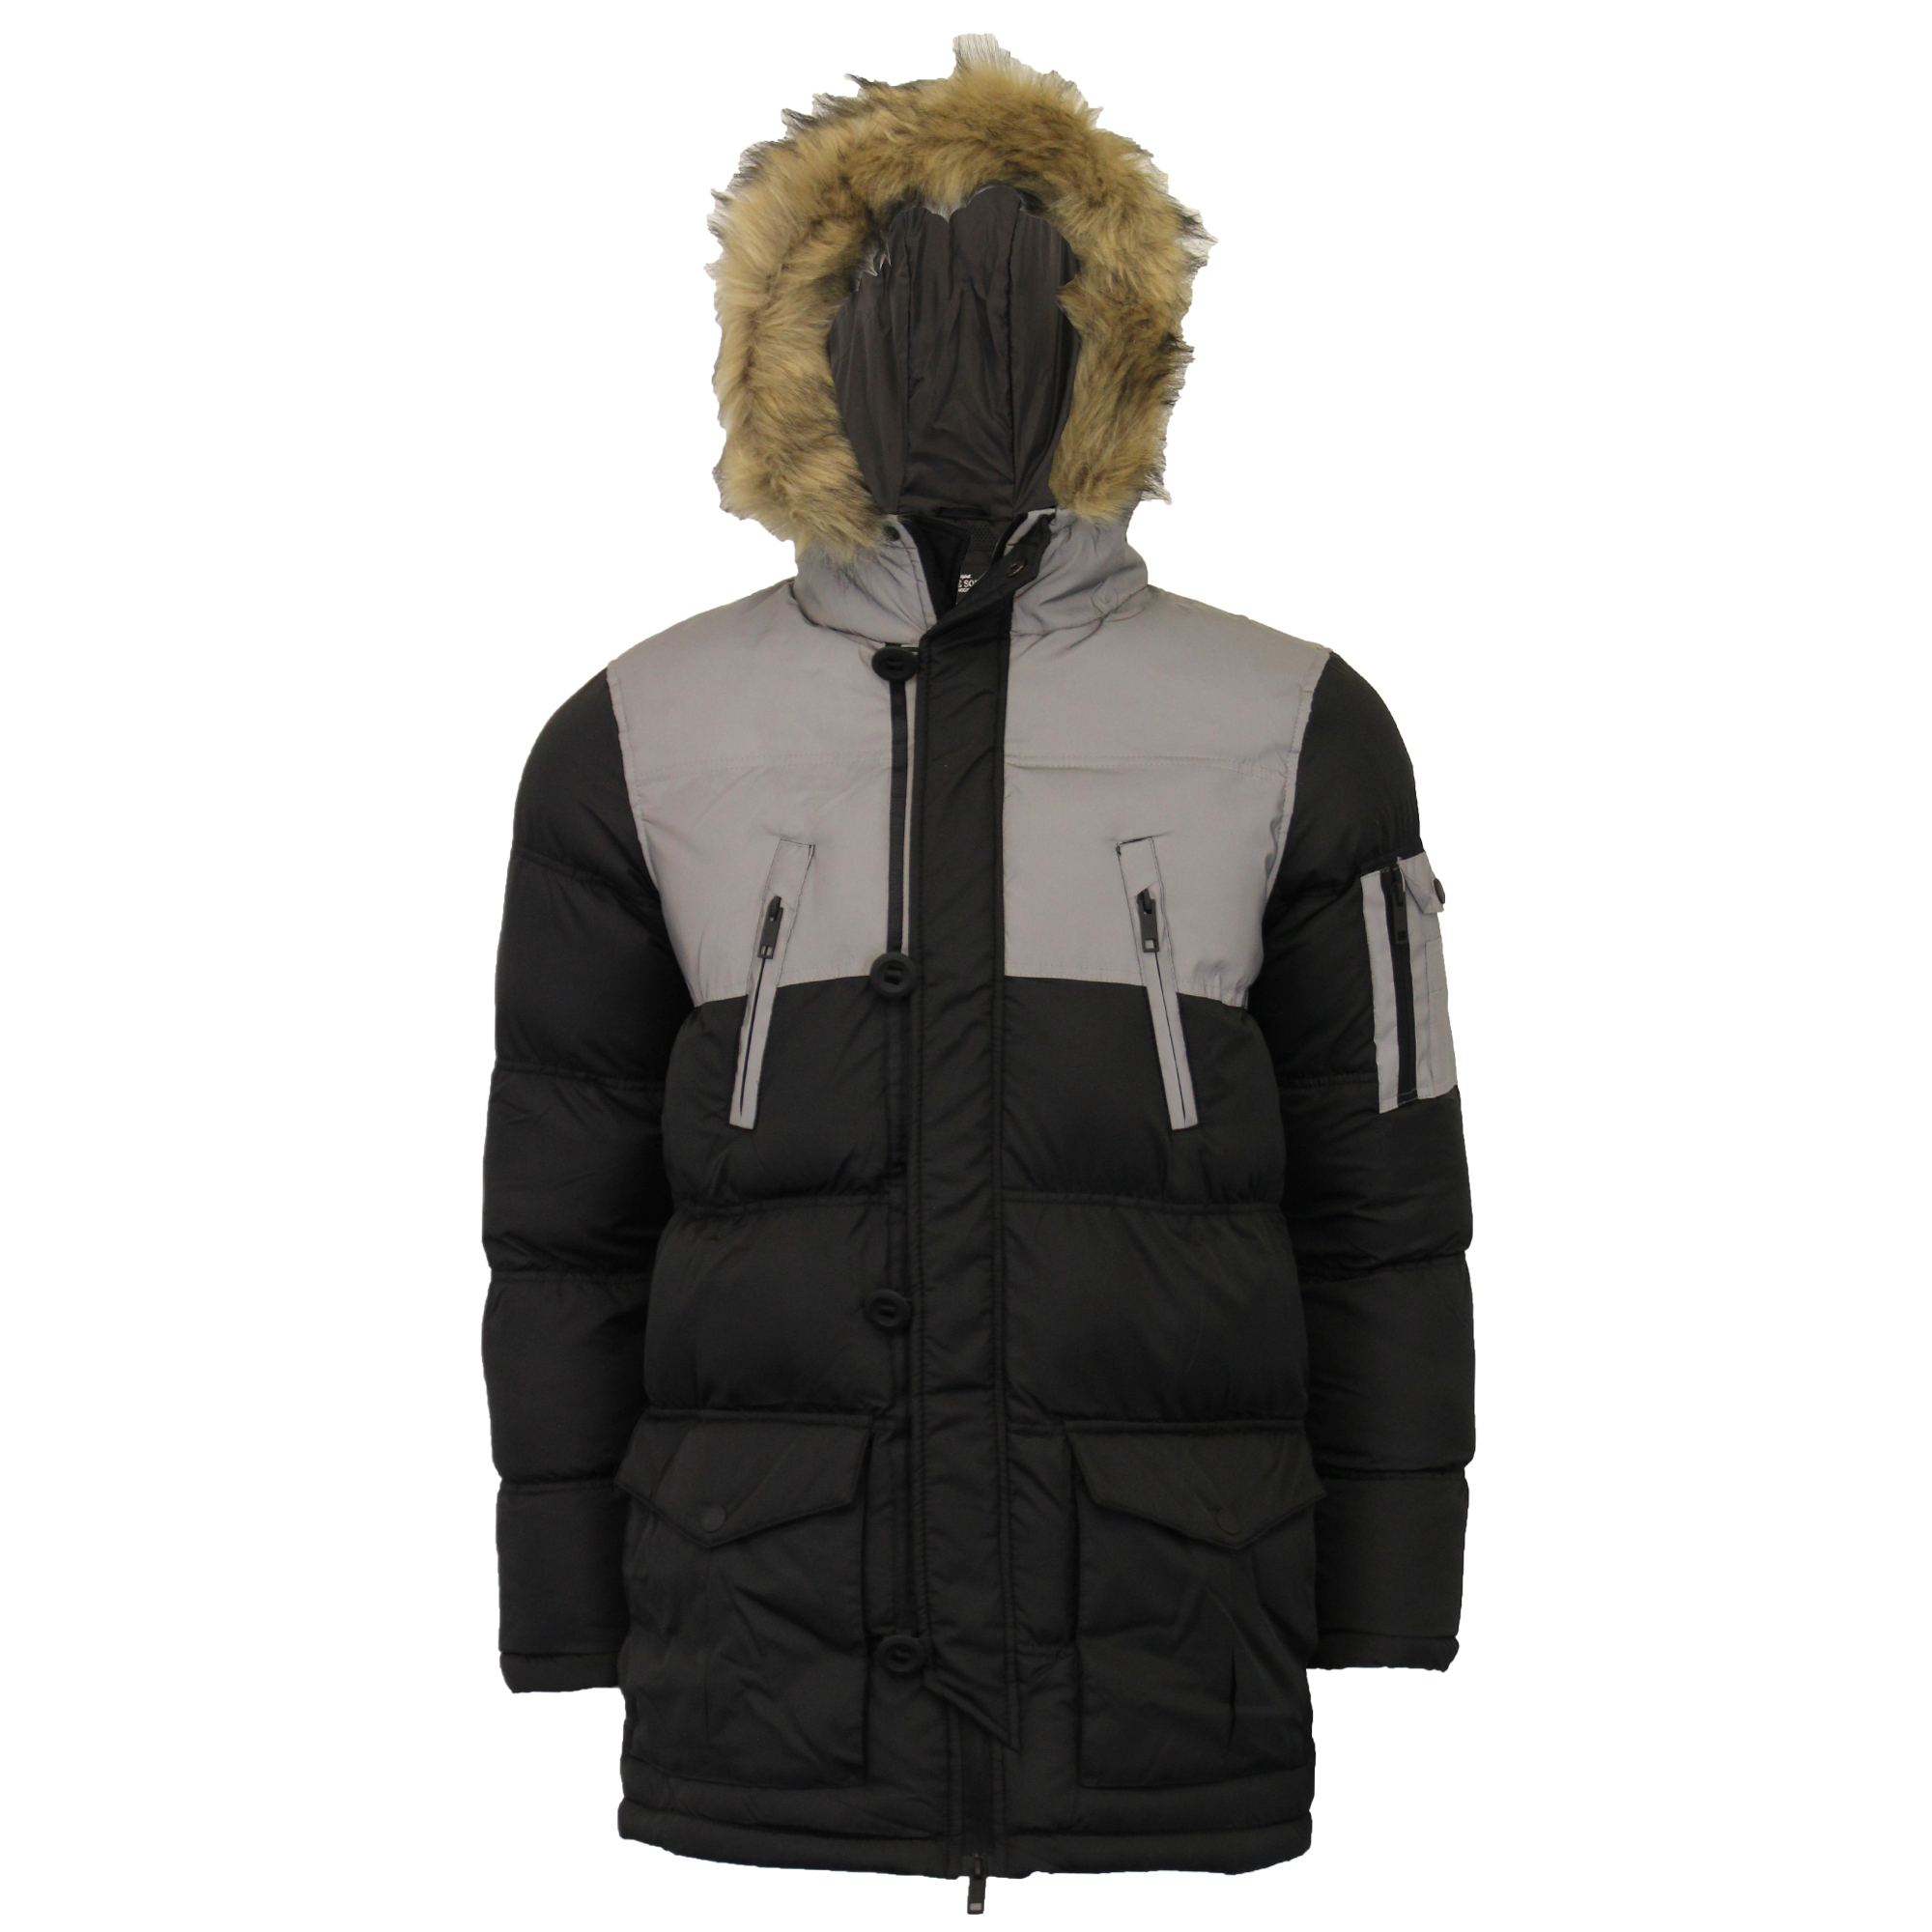 Mens-Reflective-Long-Bubble-Parka-Jacket-Brave-Soul-Coat-Hooded-Padded-Winter thumbnail 3